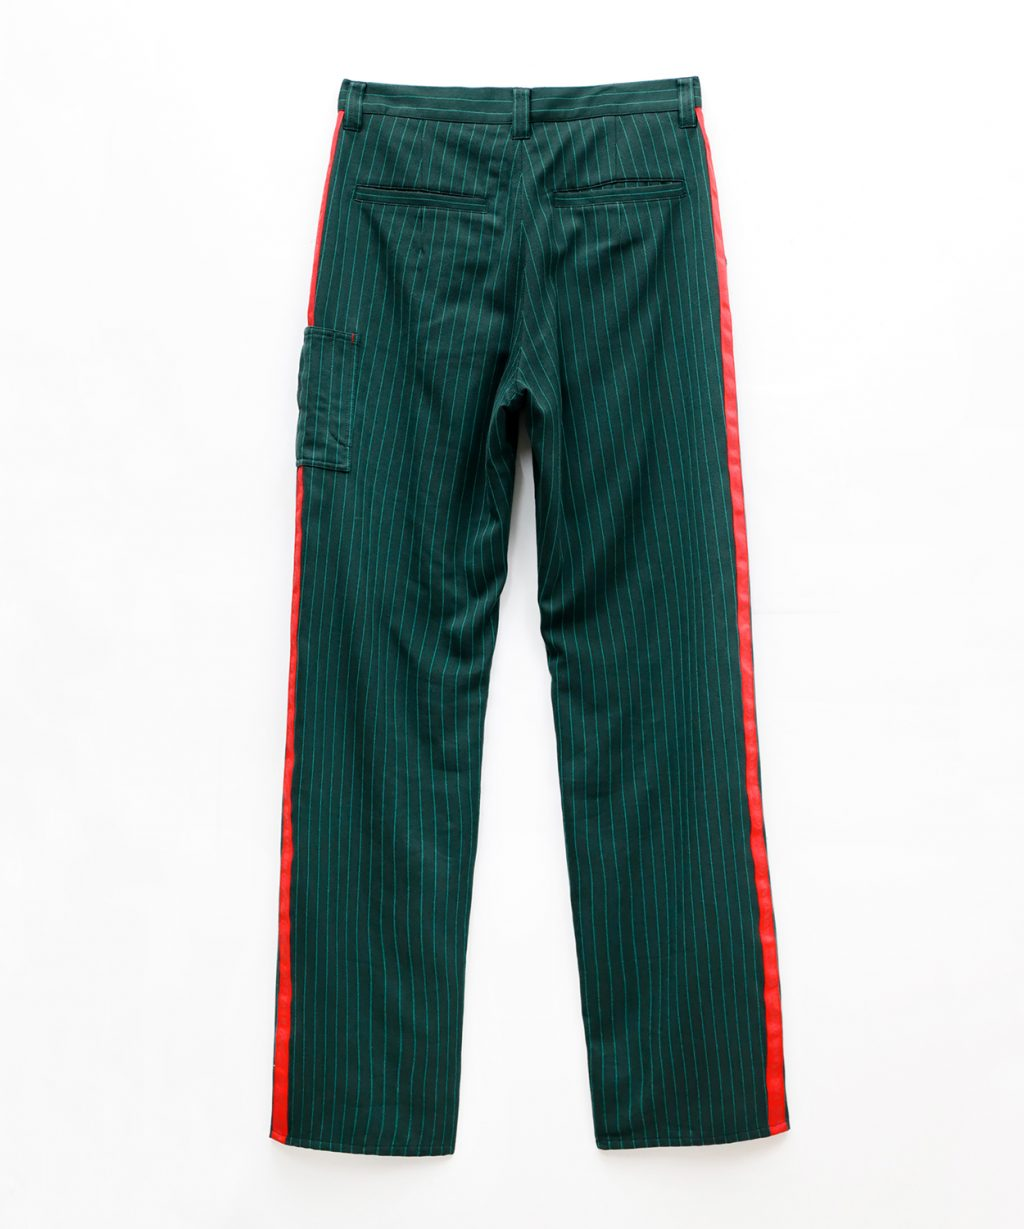 COCA-COLA-STRIPE-PANTS-green2-1024x1229.jpg